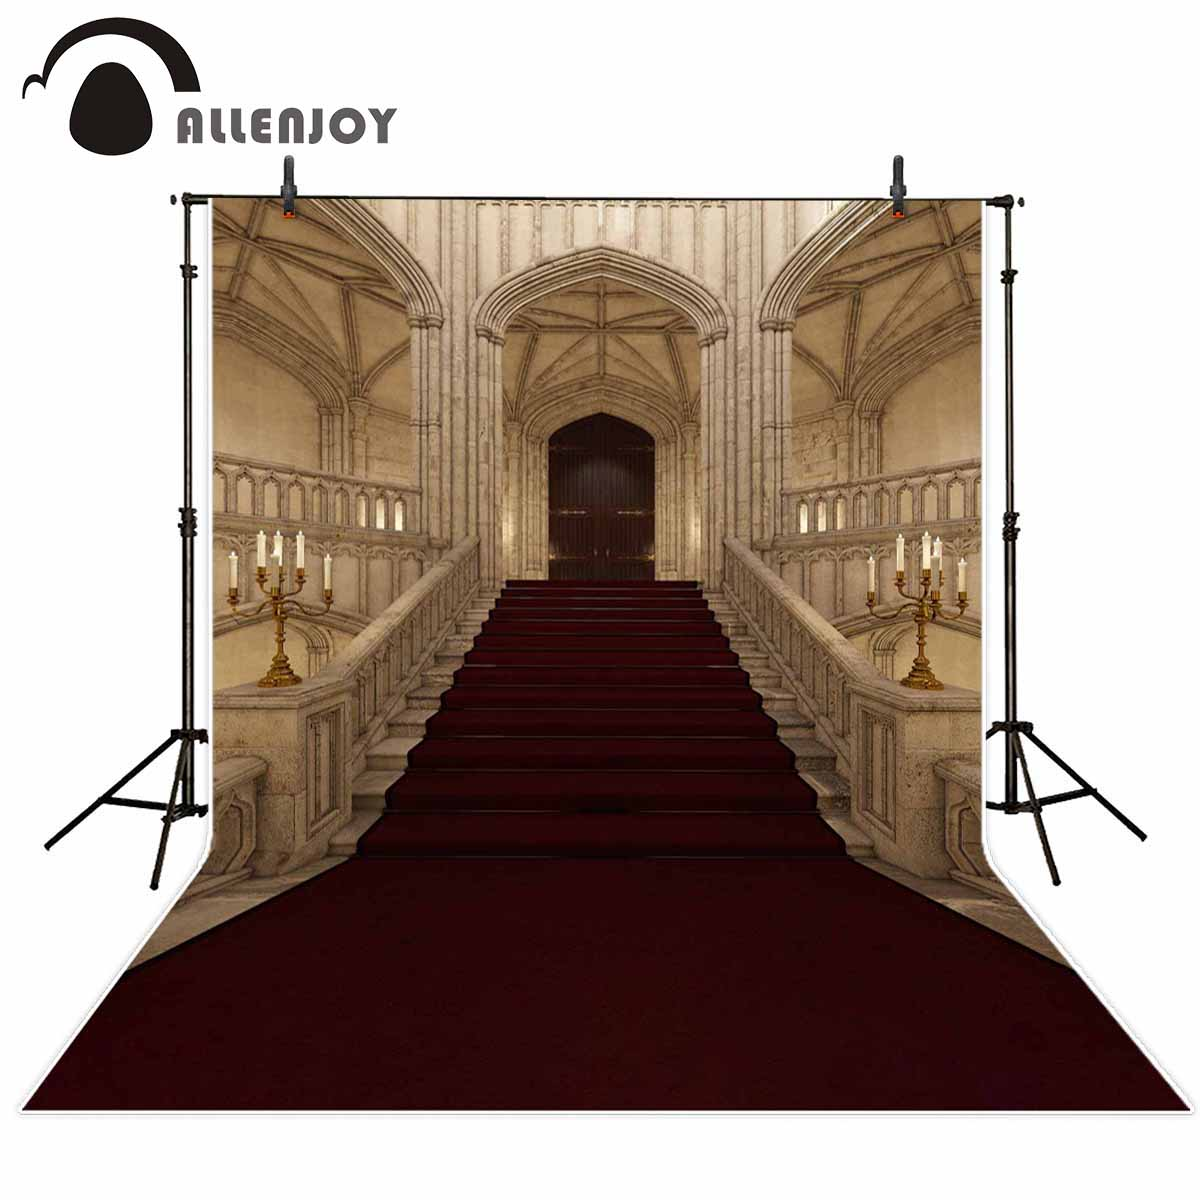 Allenjoy photography backdrop fairy tale palace red carpet stairs door background for photo studio photocall photophone props